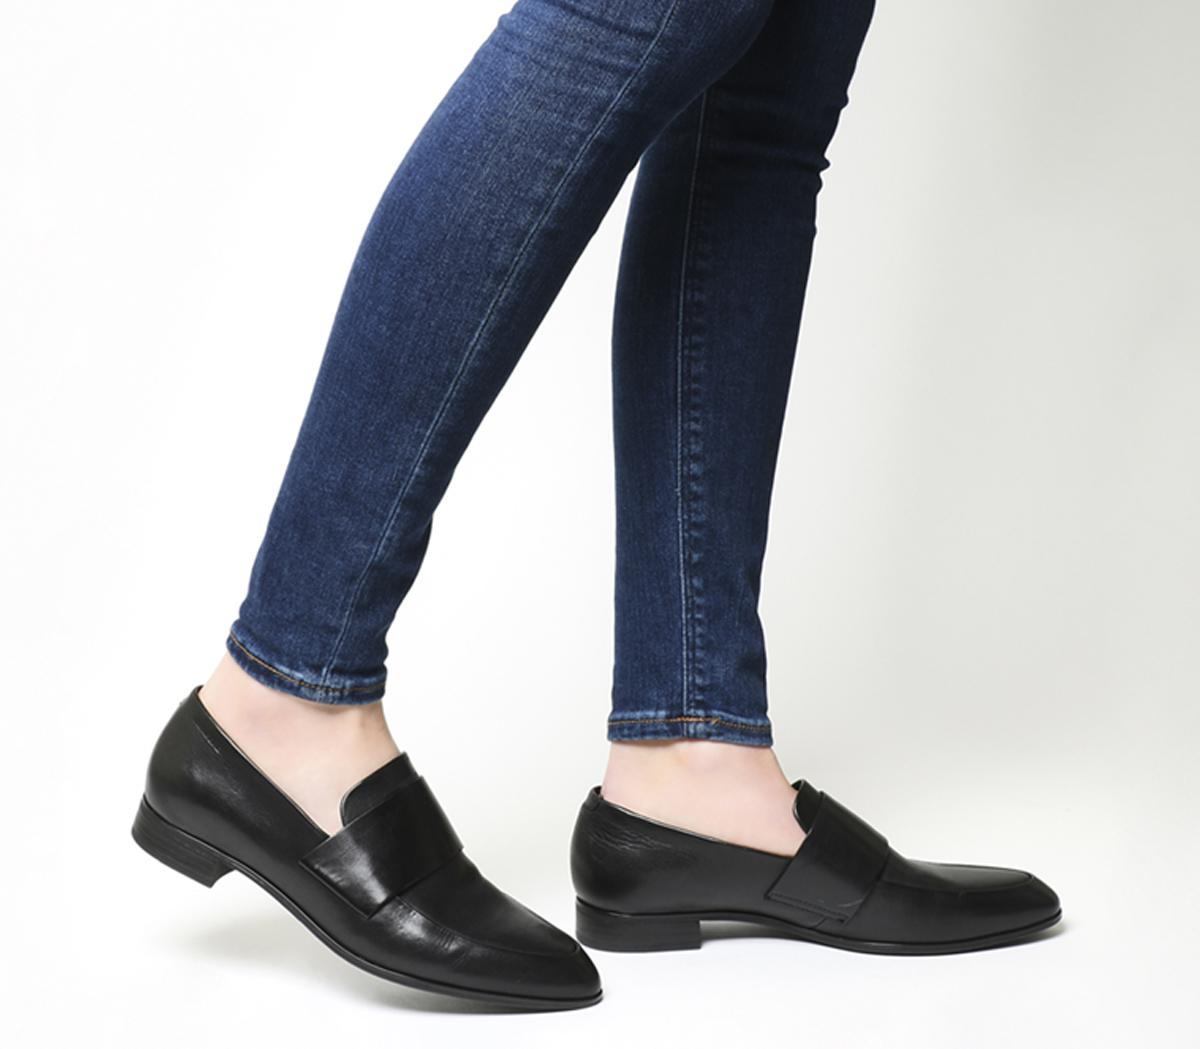 438e8a38aa4 Lyst - Vagabond Frances Loafers in Black